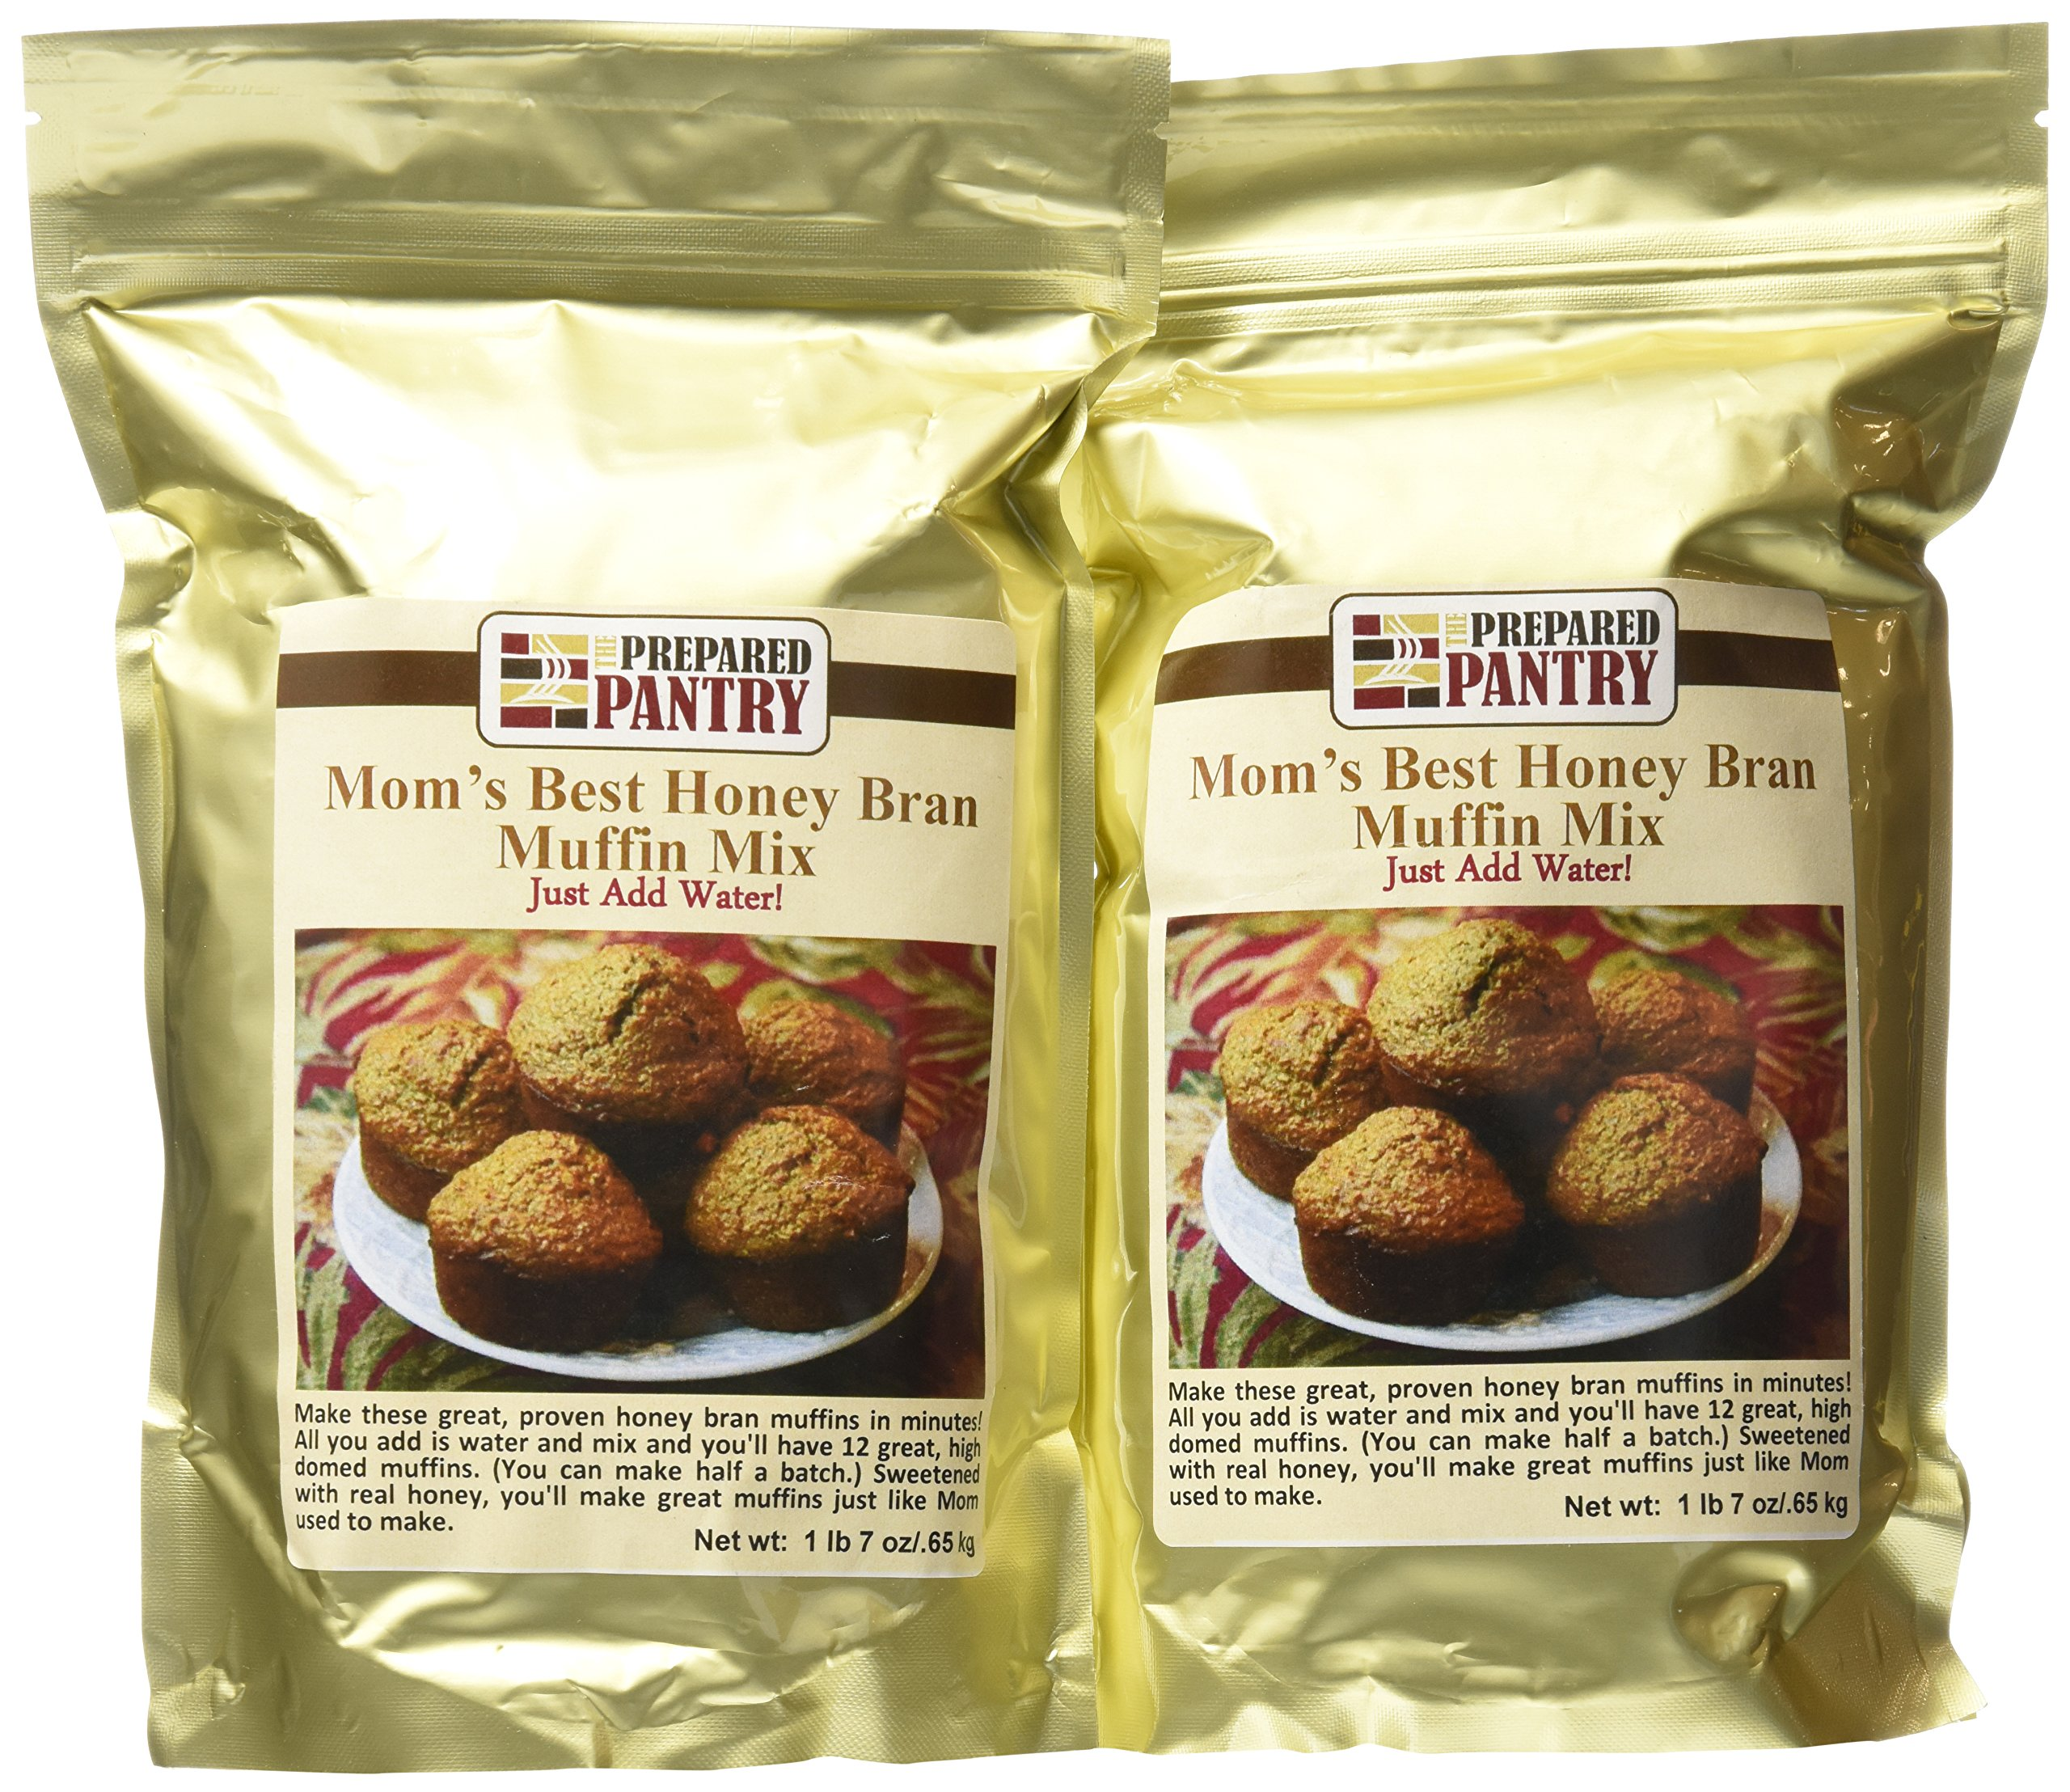 The Prepared Pantry Mom's Best Honey Bran Just-Add-Water Muffin Mix, 46 Ounce